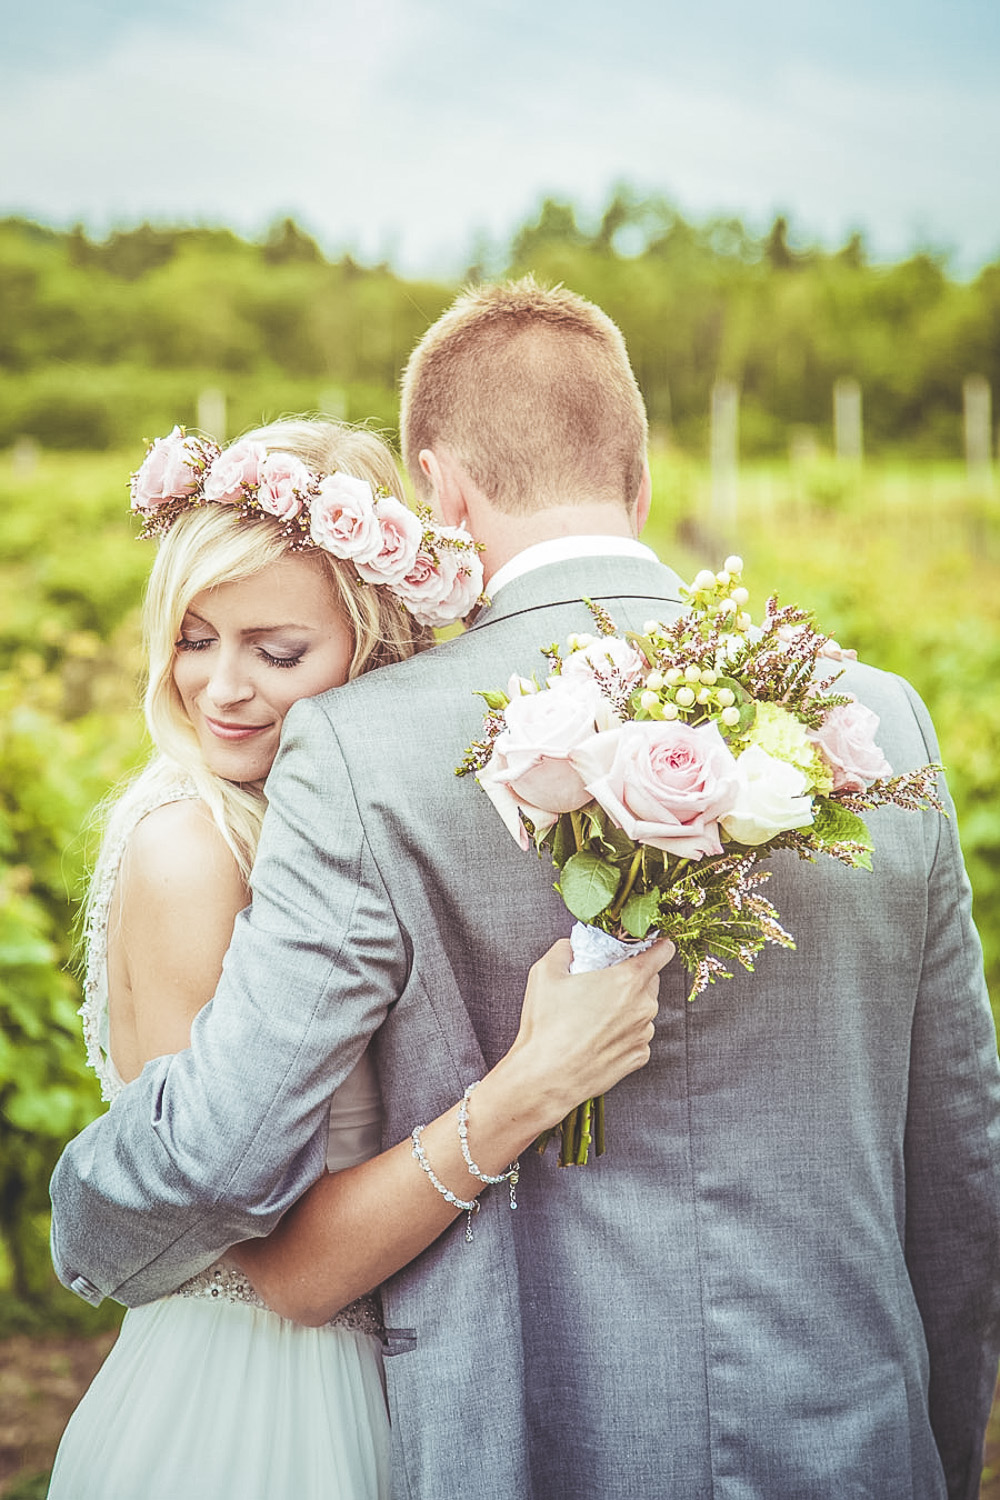 Hayley Paige Wedding Dress For A Pastel Themed Wedding With Rose ...